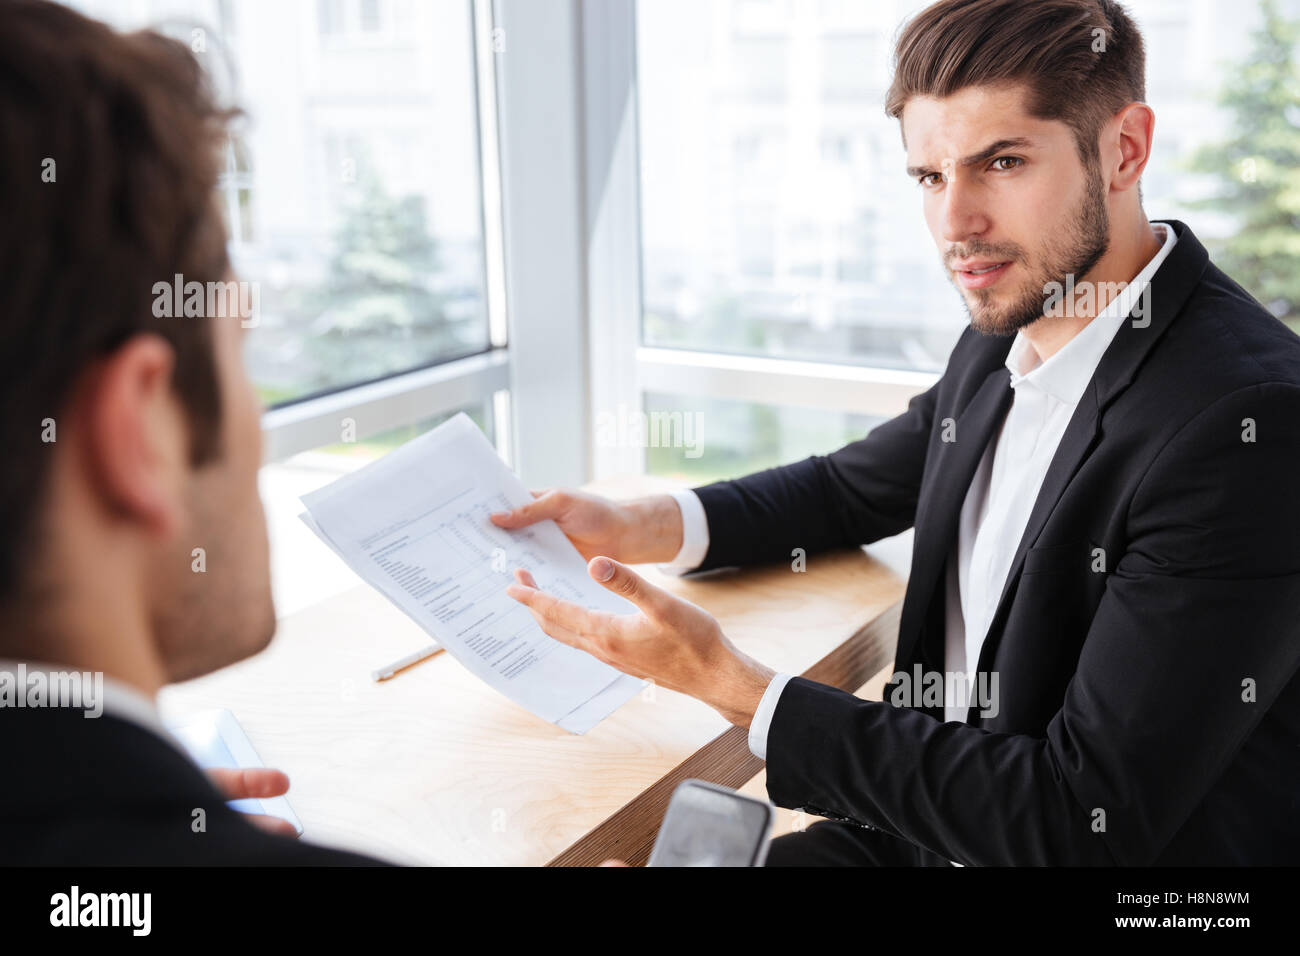 Serious young businessman sitting and giving documents to his colleague in office - Stock Image